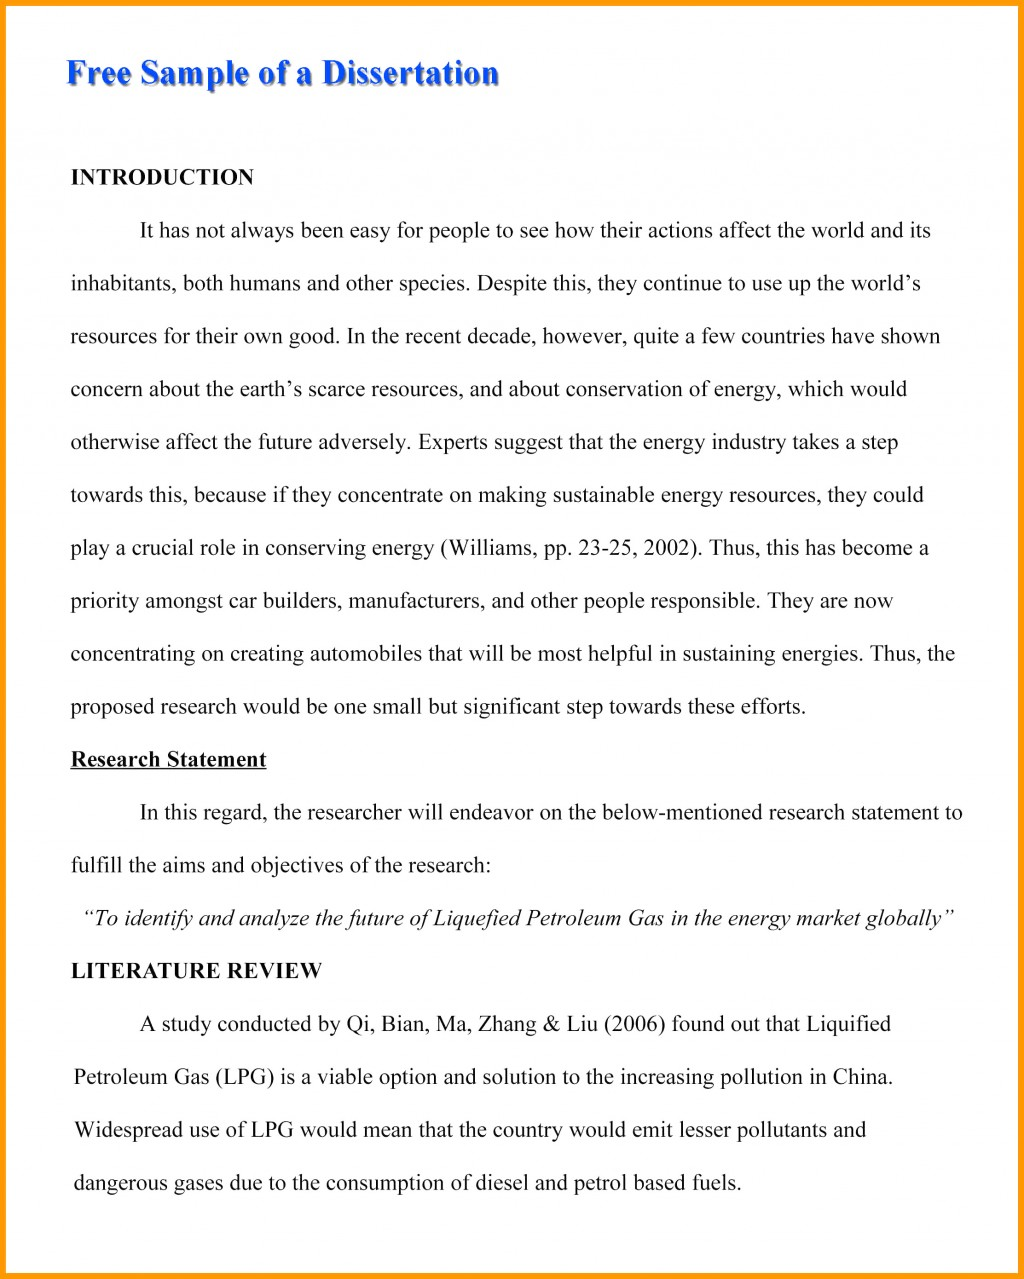 008 Outline Research Paper War On Drugs Formidable Examples For Middle School Writing A Template Mla Large